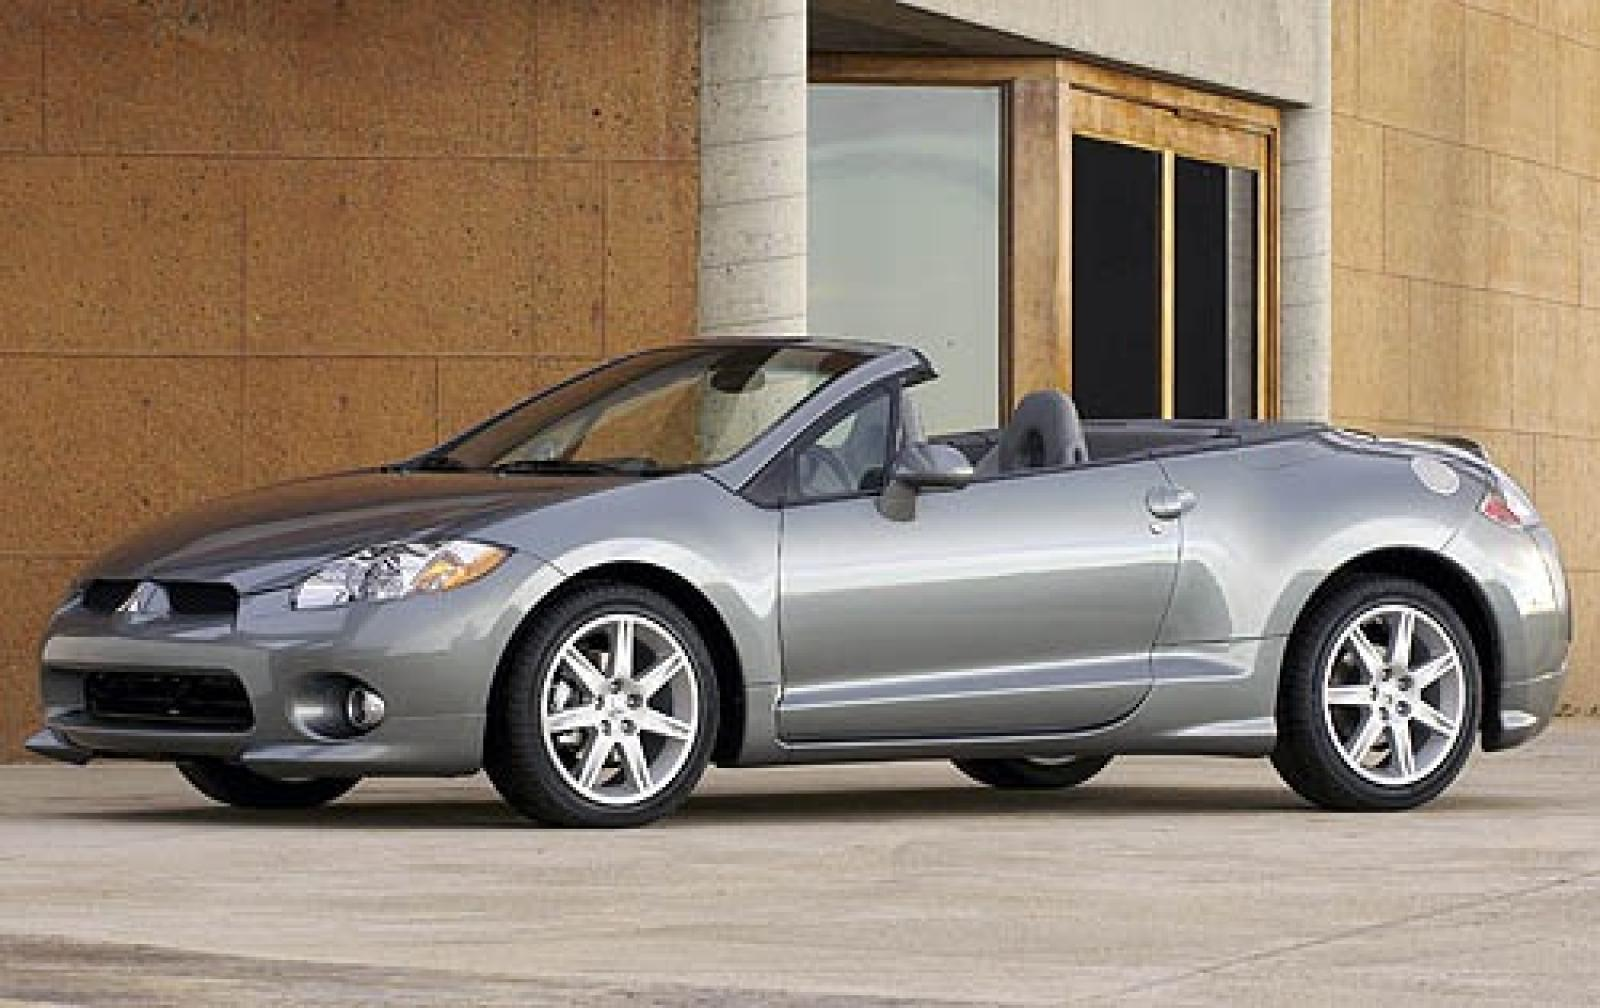 2007 mitsubishi eclipse spyder information and photos zombiedrive. Black Bedroom Furniture Sets. Home Design Ideas